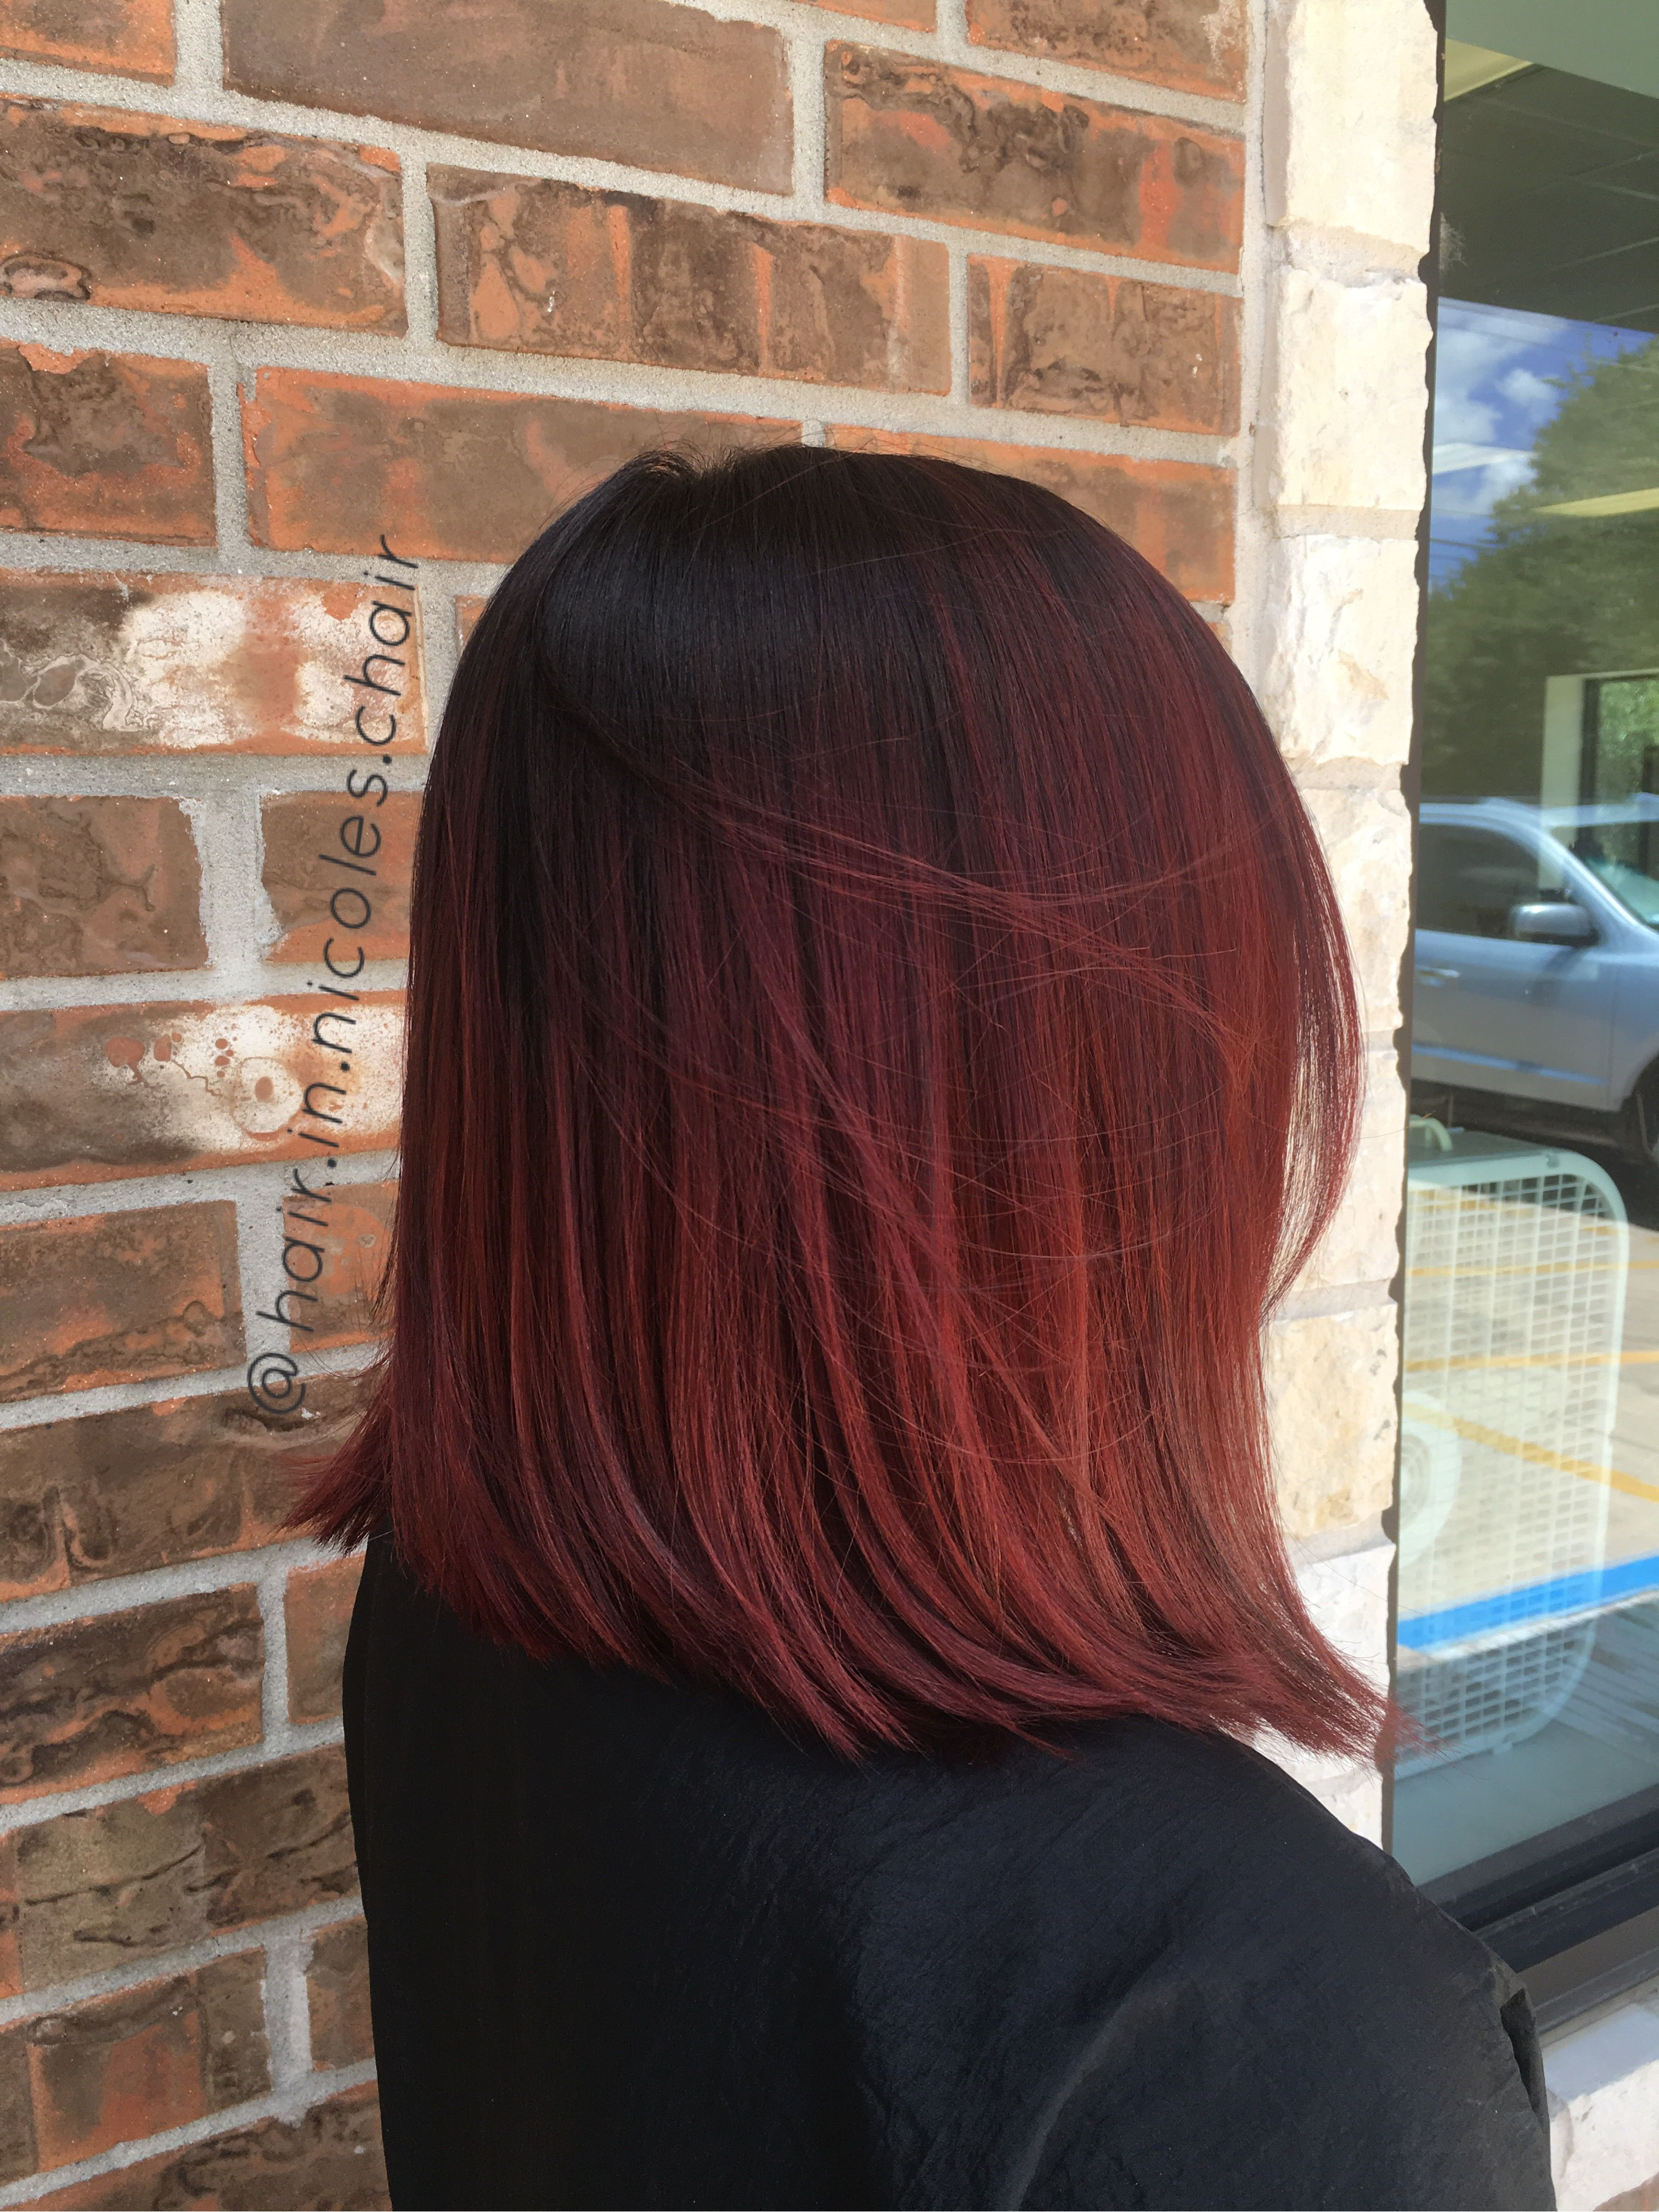 Dark Shadow Root And Bright Red Hair Austinhair At A Carter T Lund Salon Red Ombre Hair Dark Roots Hair Red Hair Color